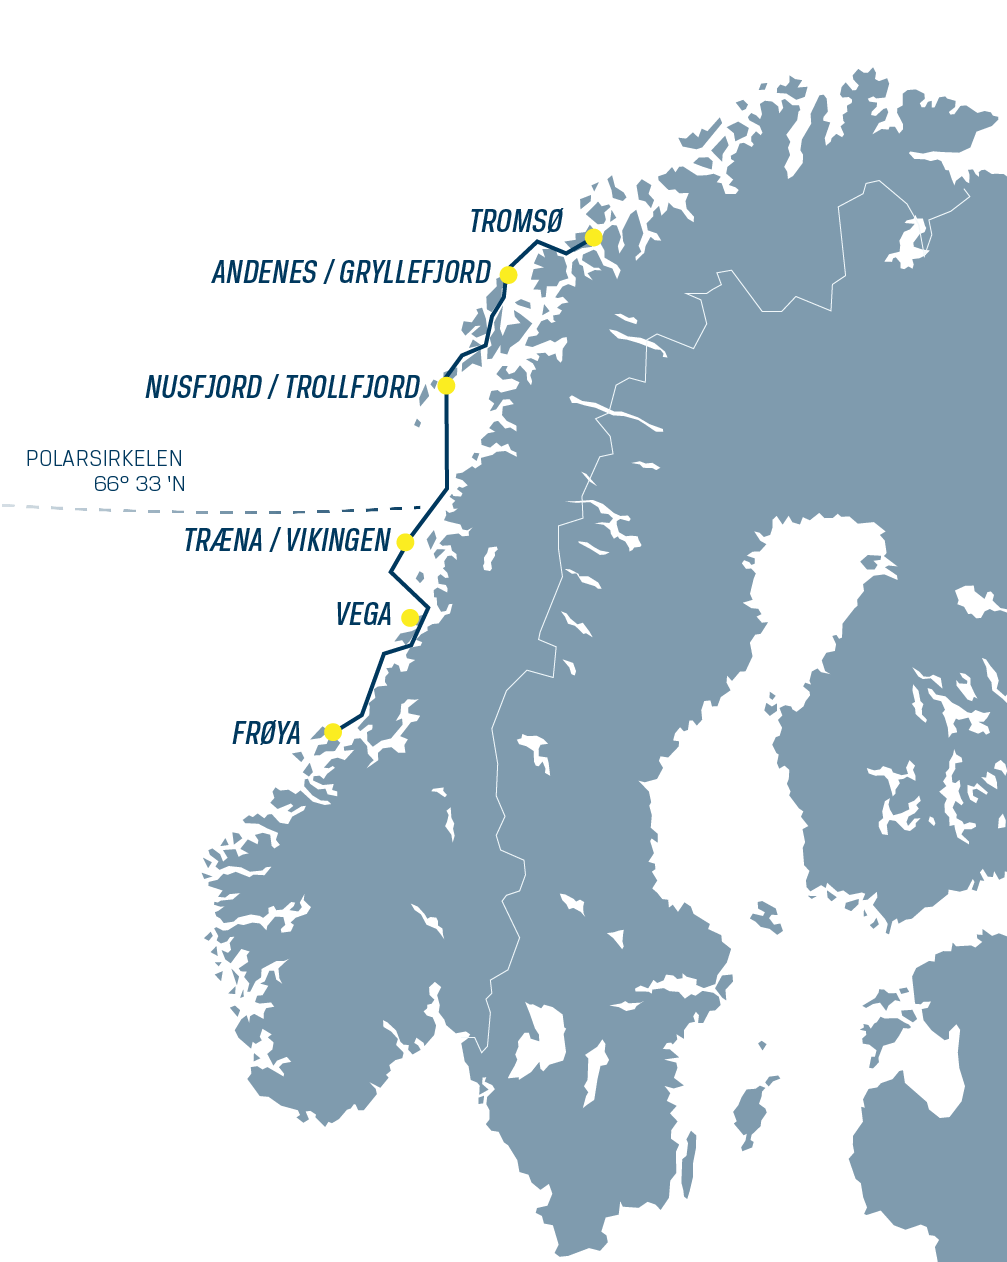 Voyage map from Frøya to Tromsø